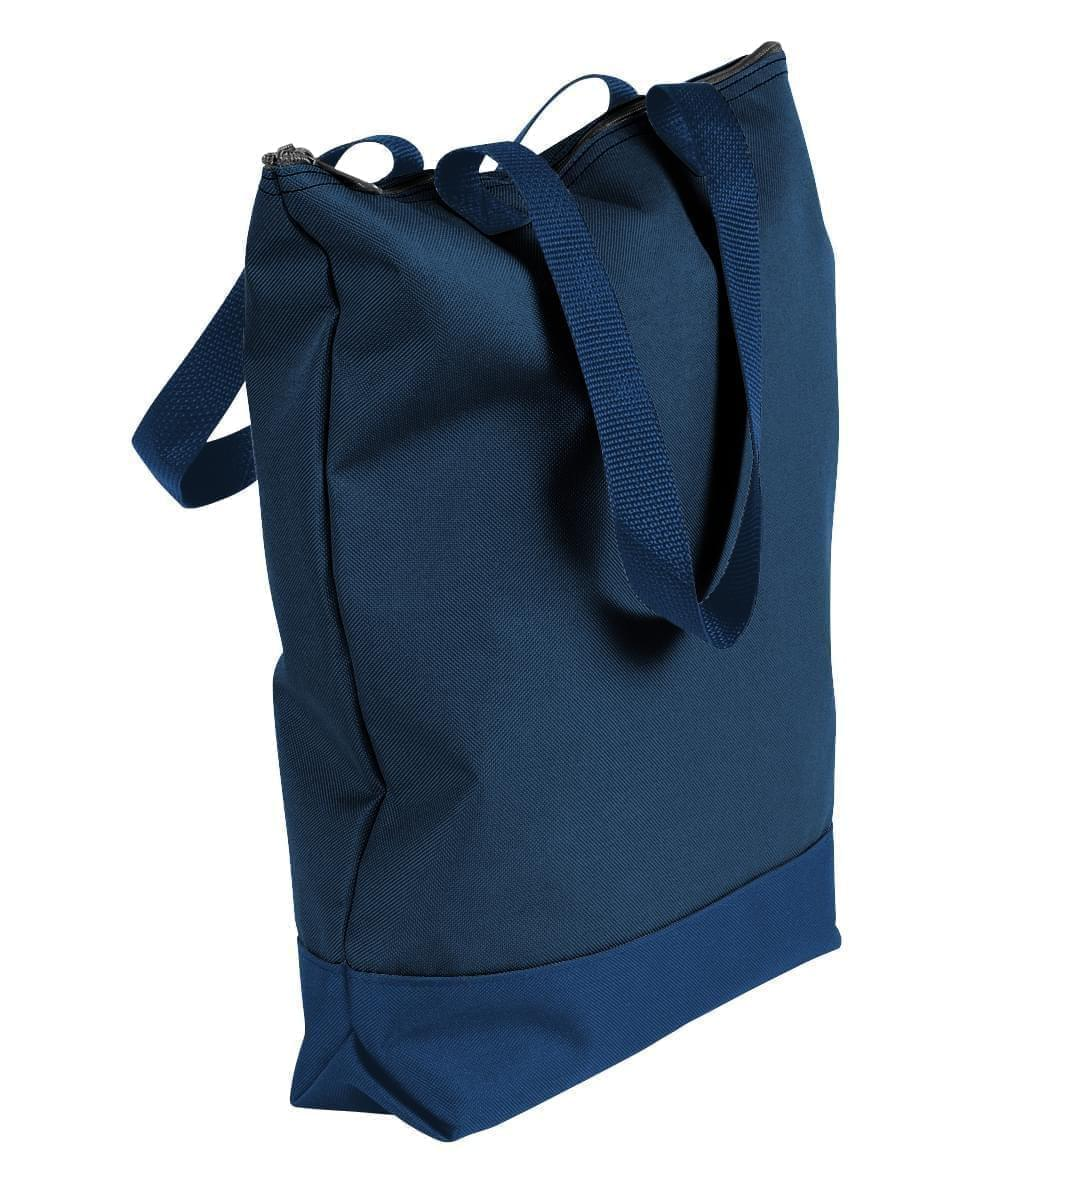 USA Made Poly Notebook Tote Bags, Navy-Navy, 1AAMX1UAWZ